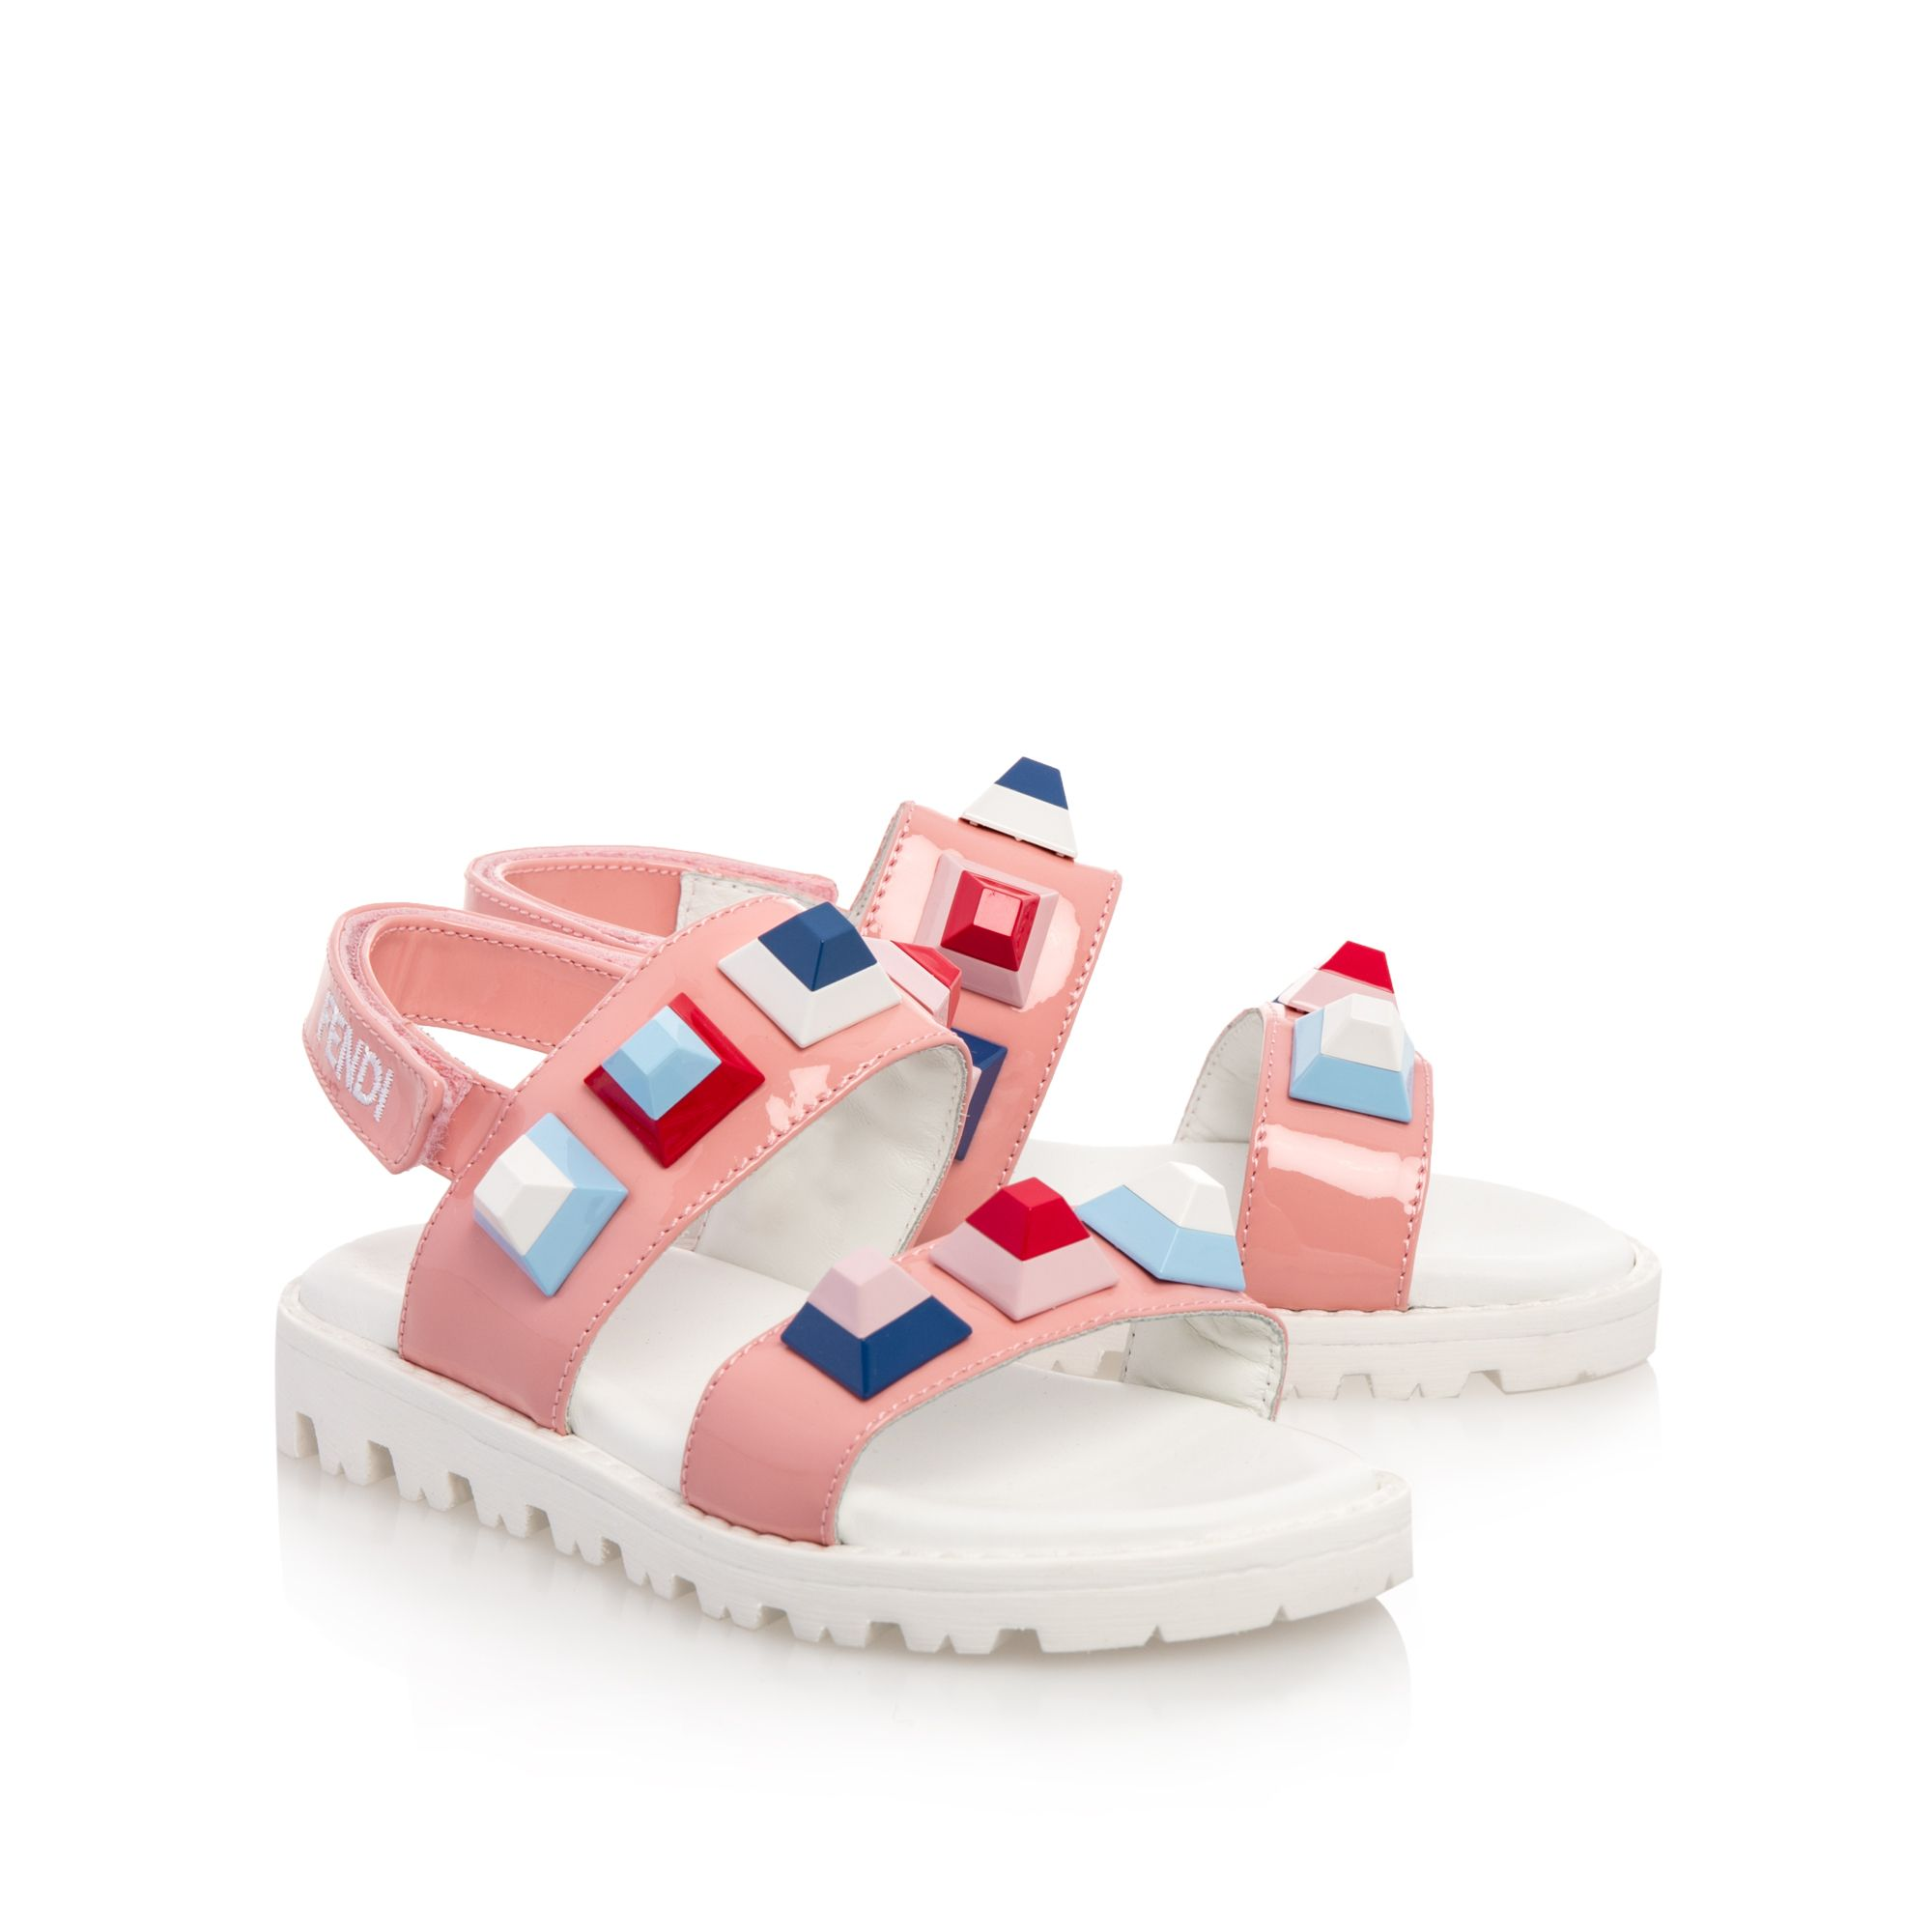 Girls Studded Patent Sandals Pink by Fendi | Girls